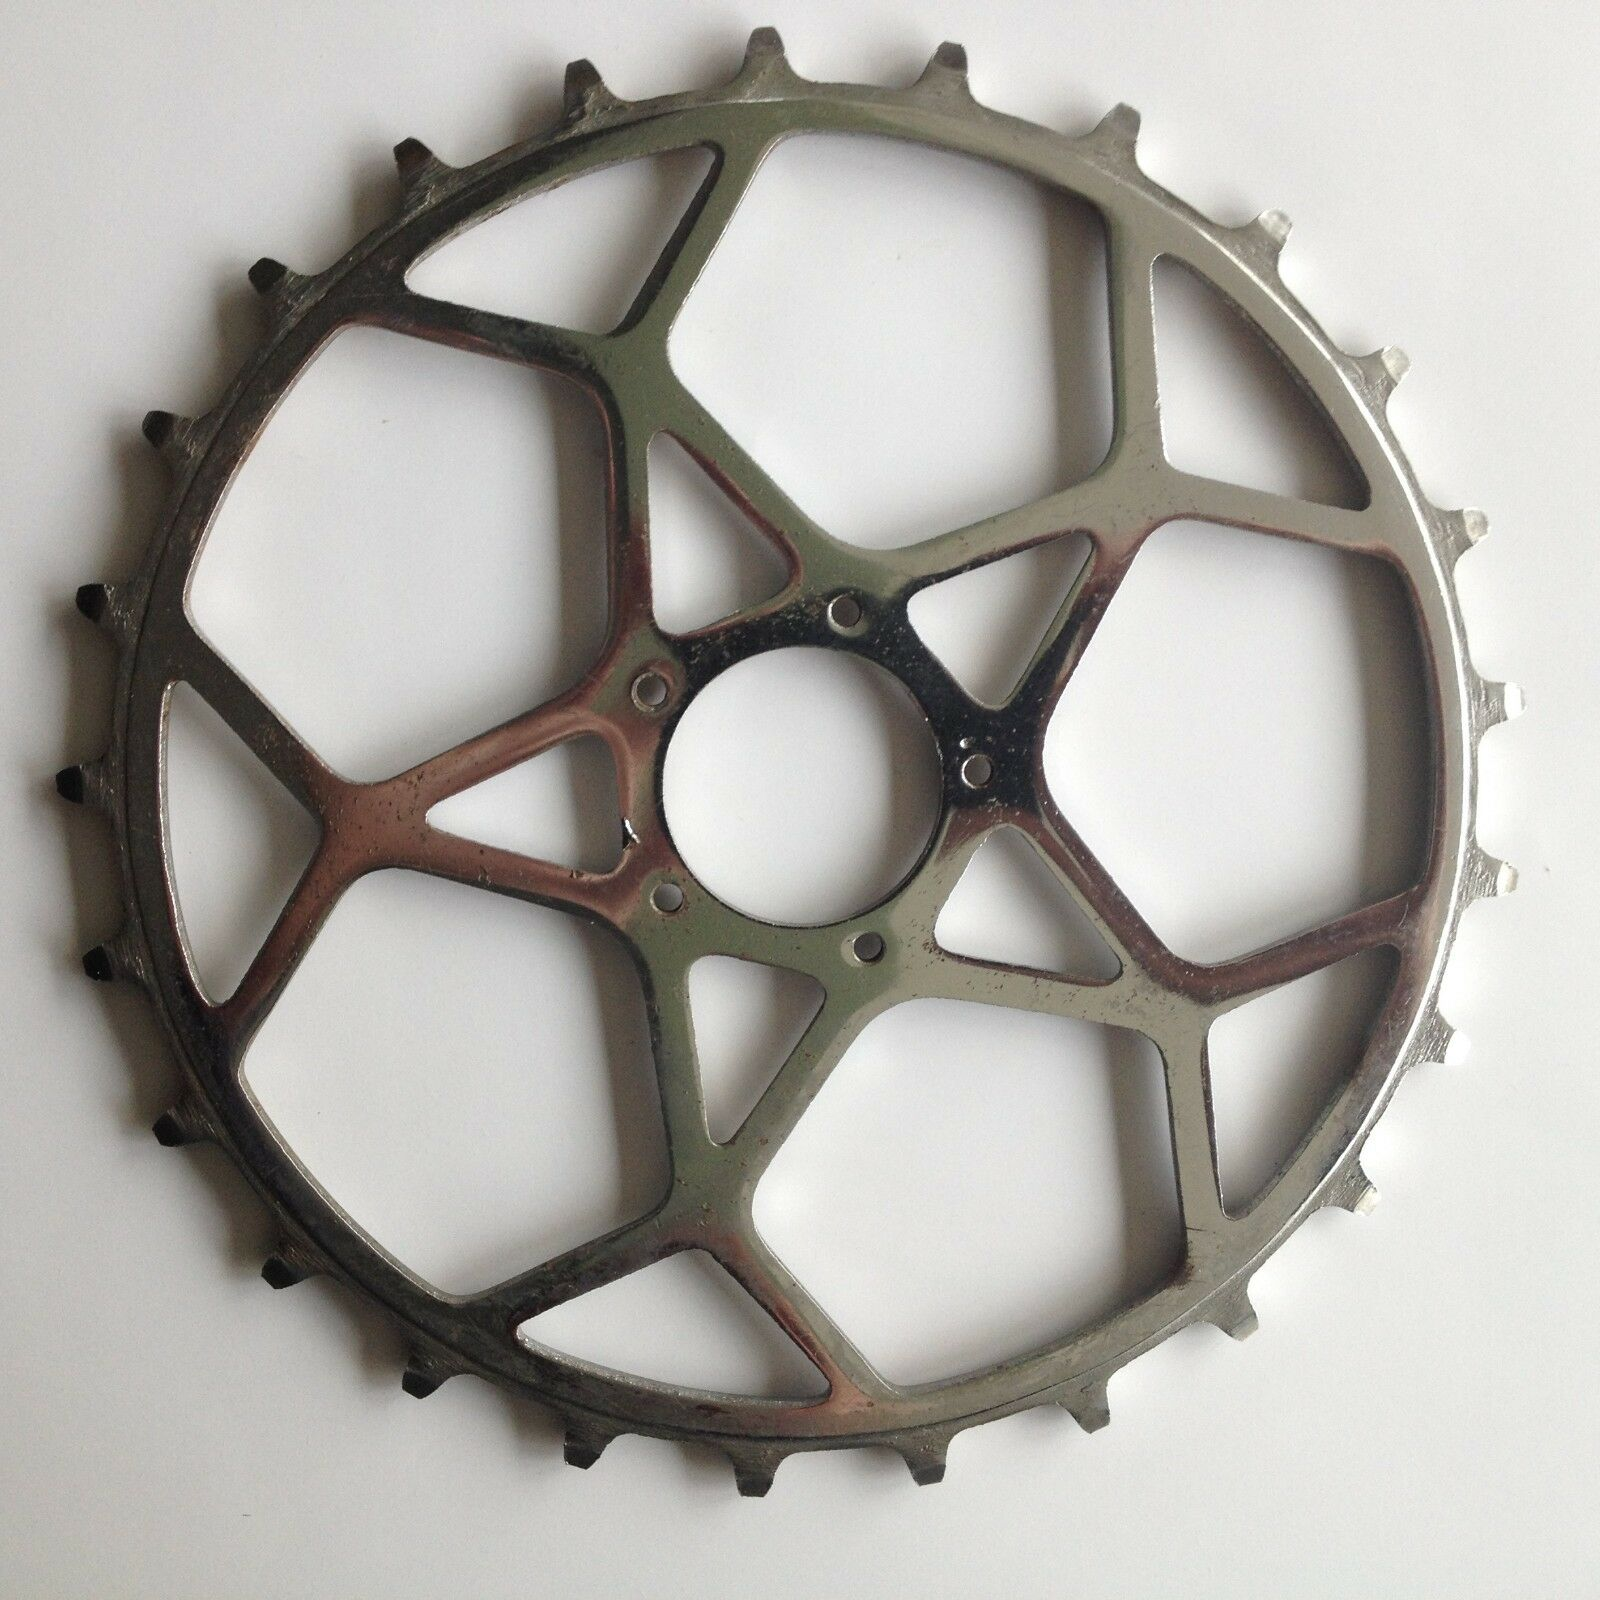 Very Rare and NOS Skip Tooth Chainring 25T